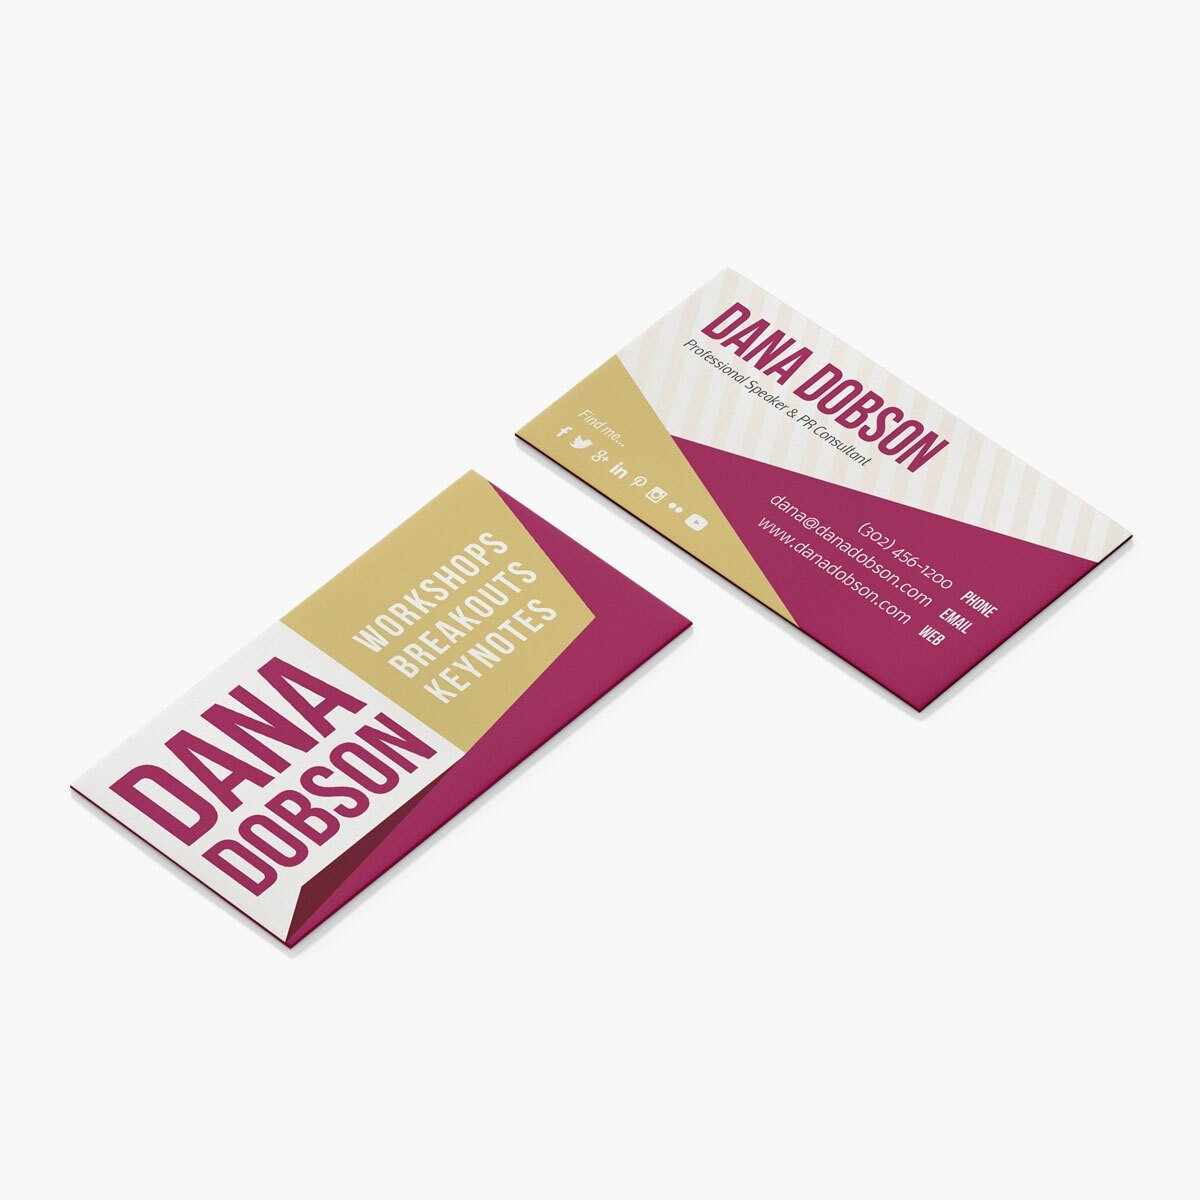 Dana Dobson Business Cards Design by BrandSwan, a graphic design company